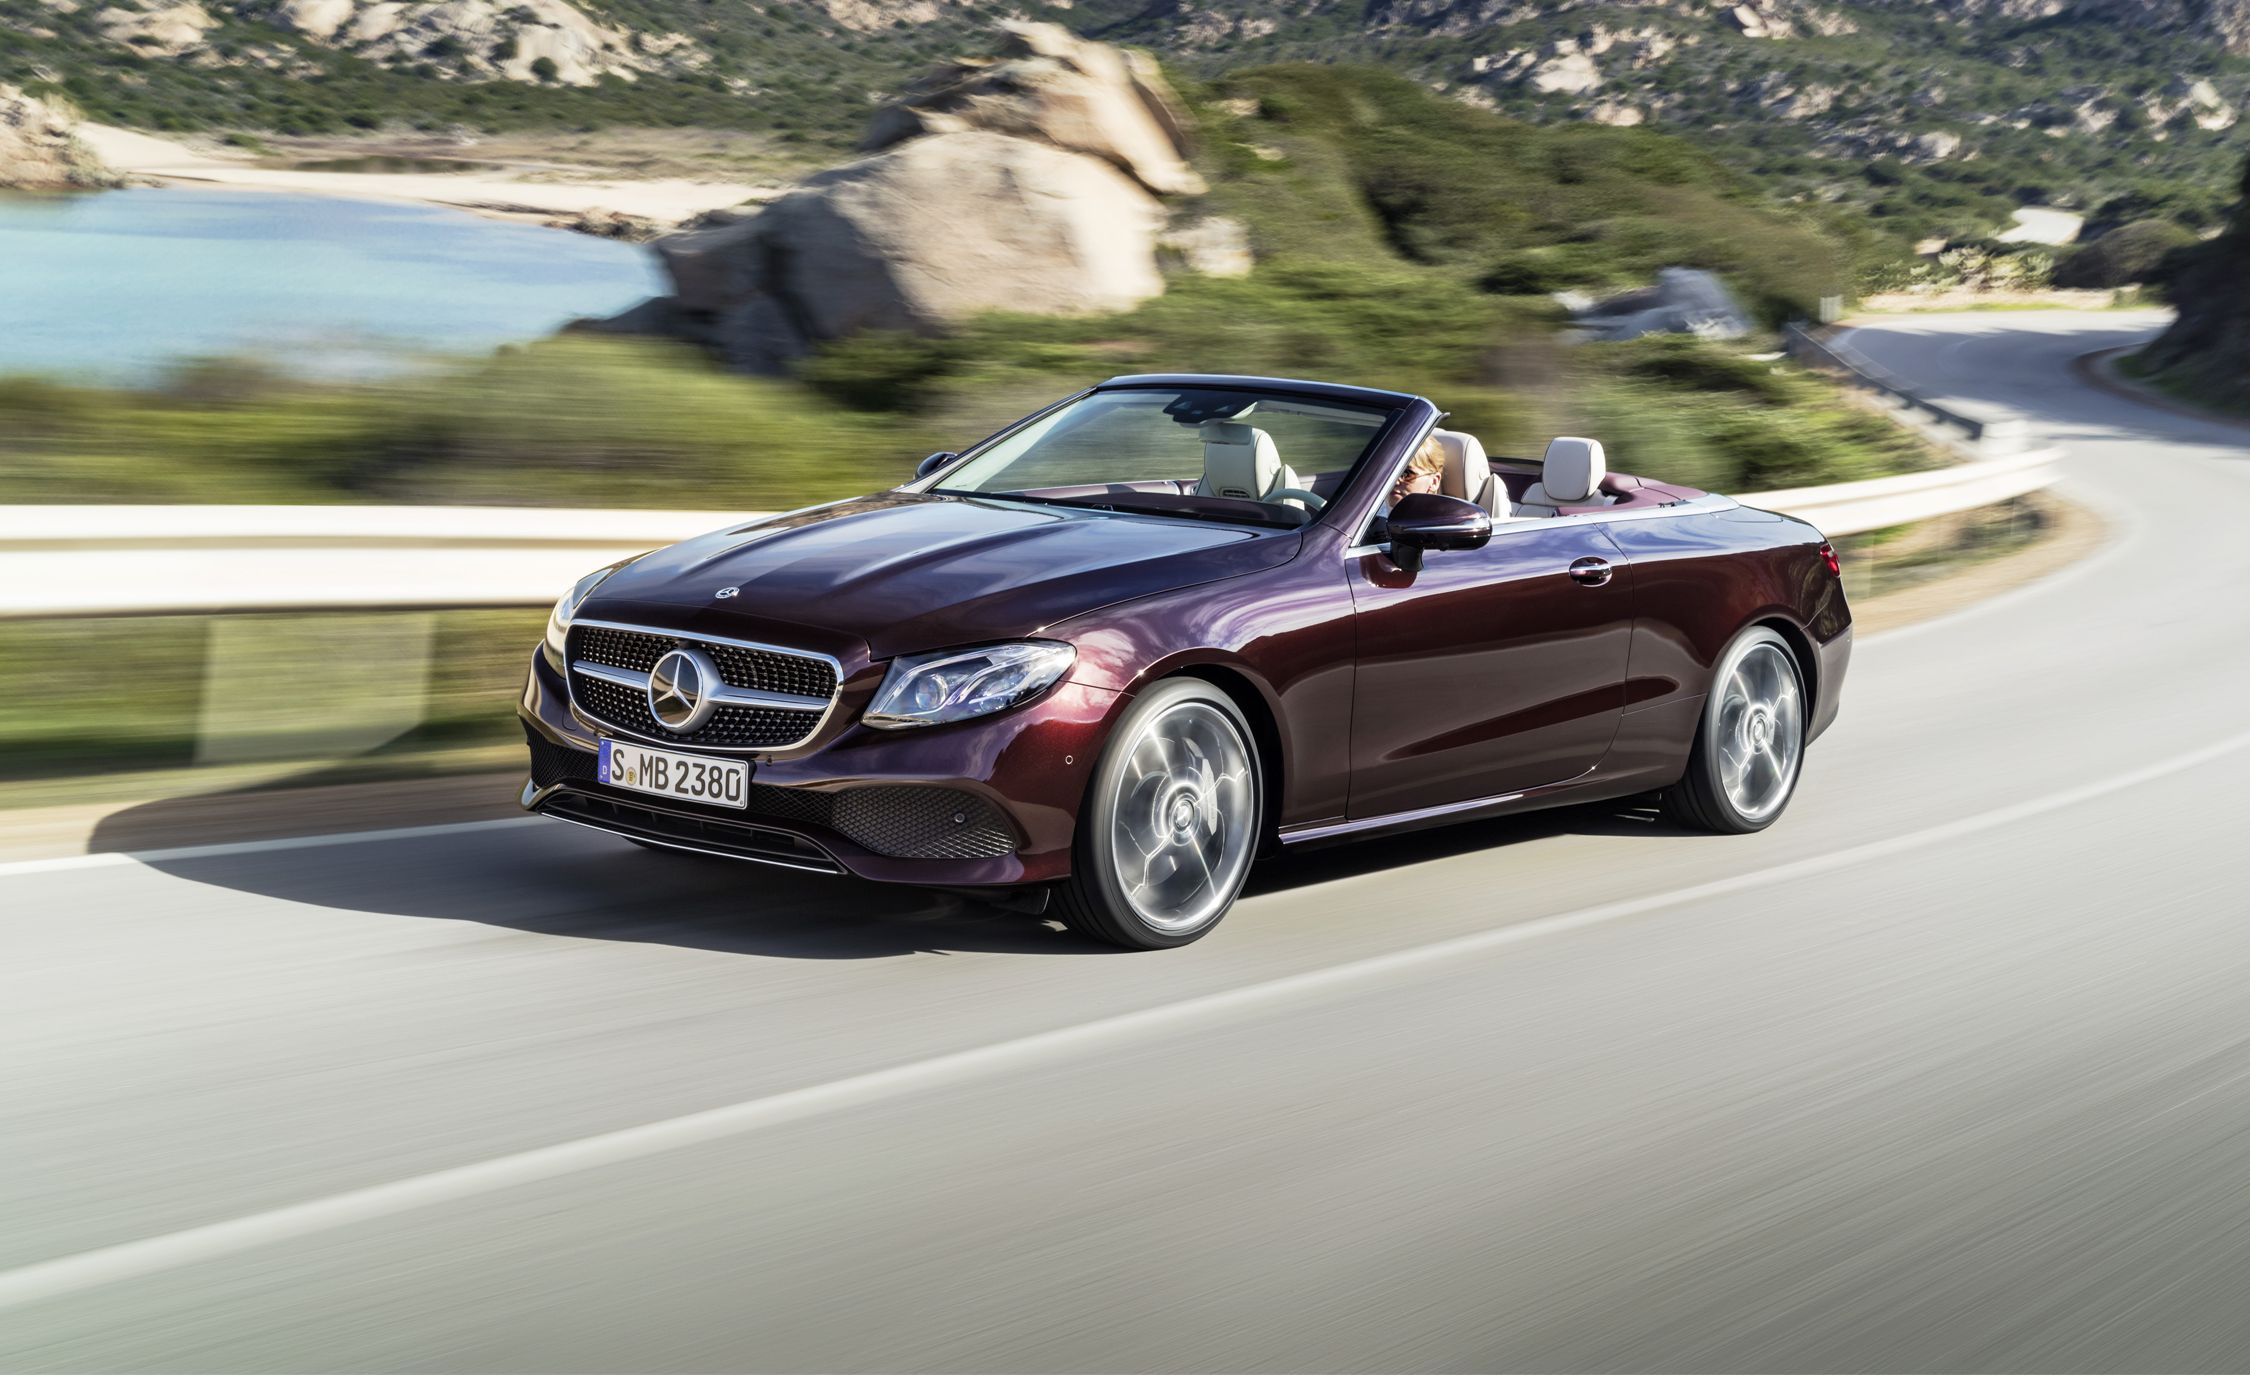 2018 Mercedes Benz E Cl Cabriolet Revealed Gains Elegance And Style